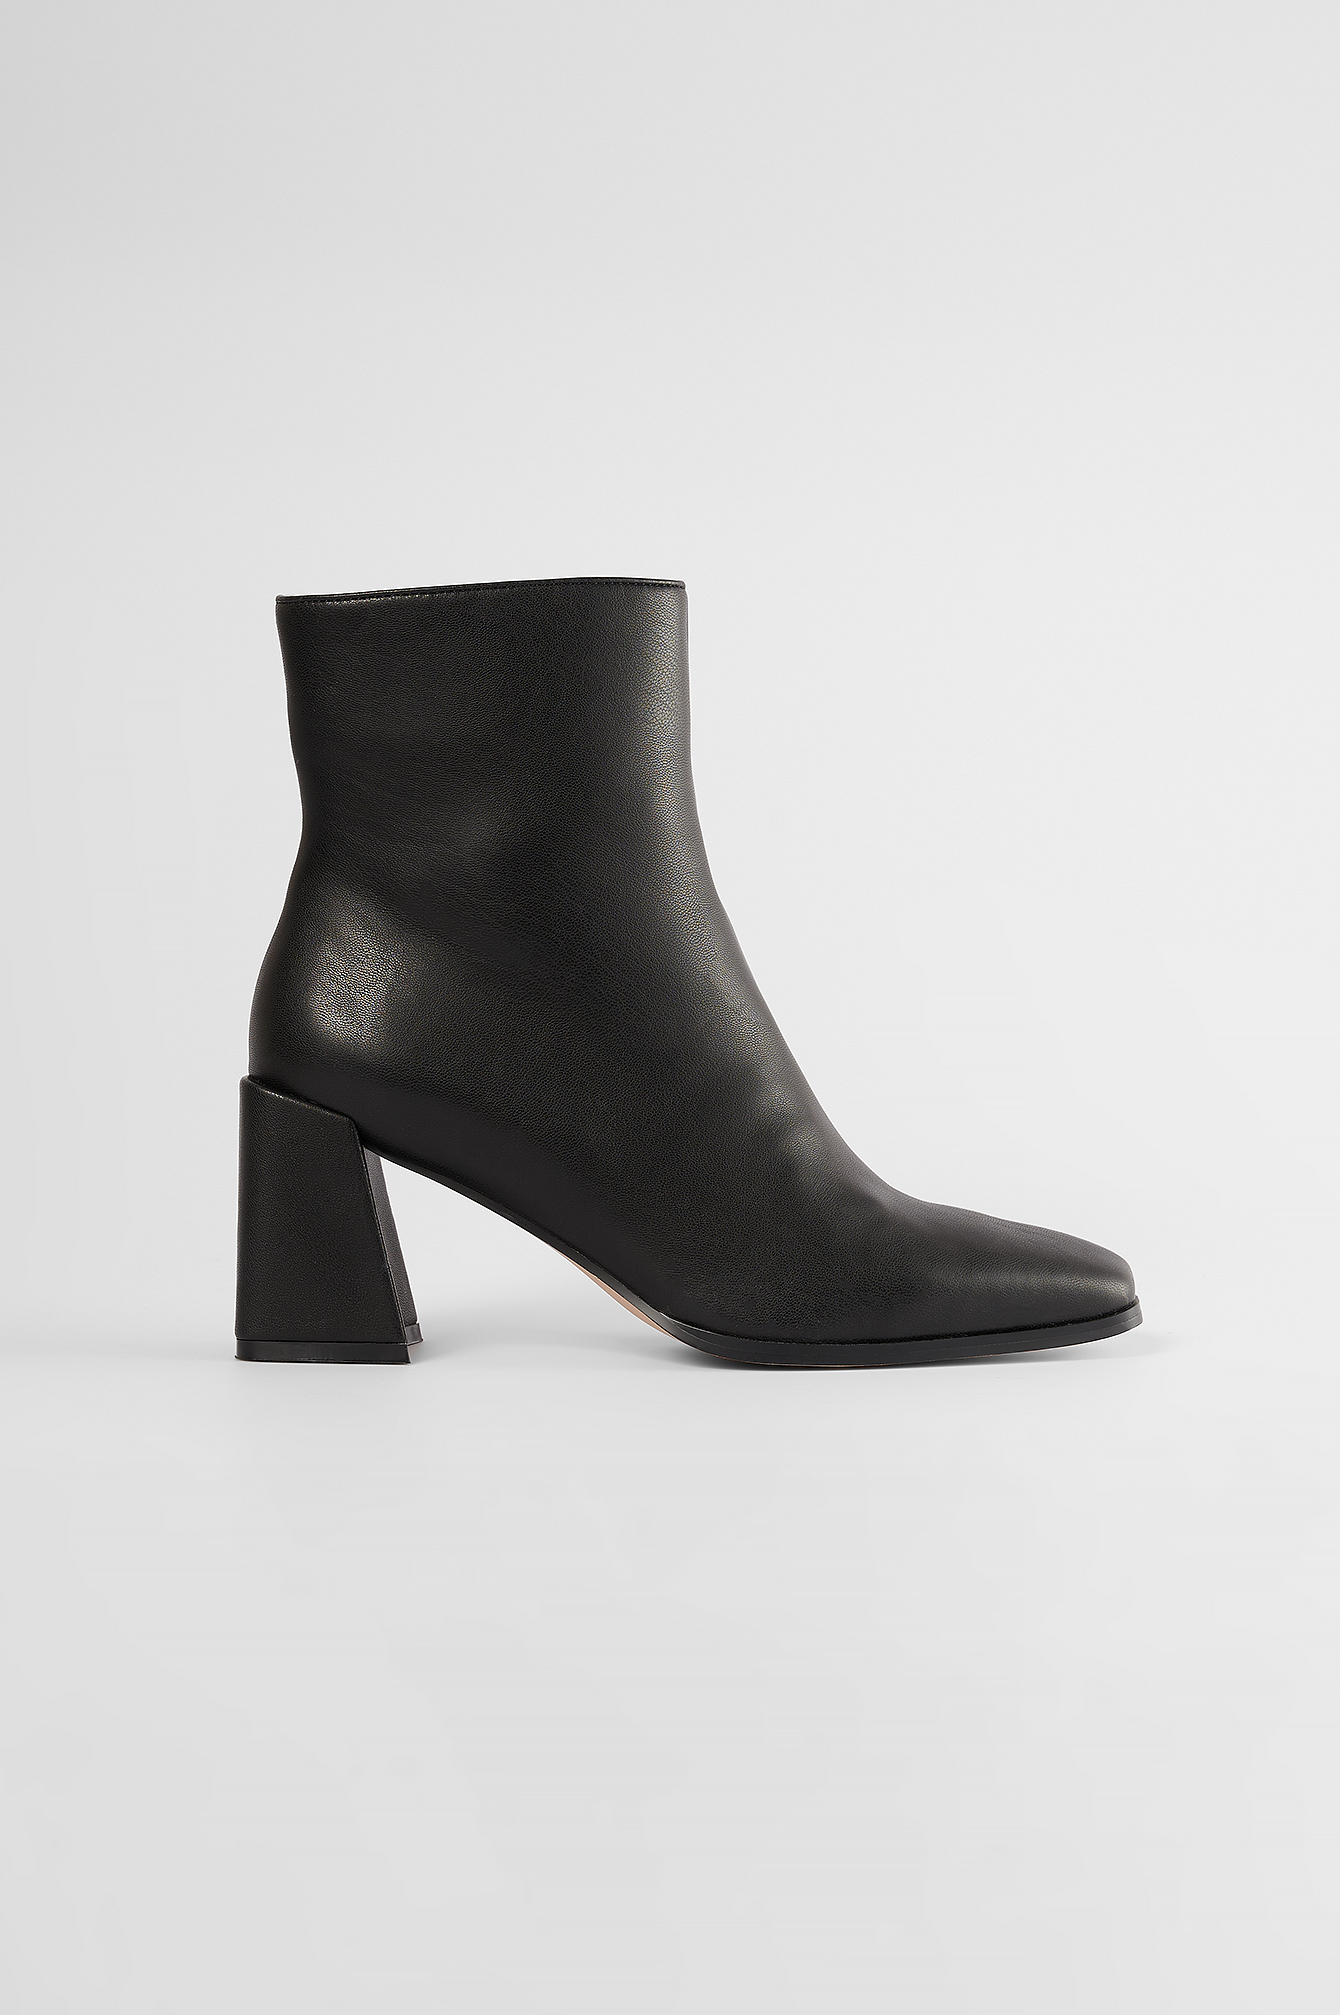 Black Square Toe Boots